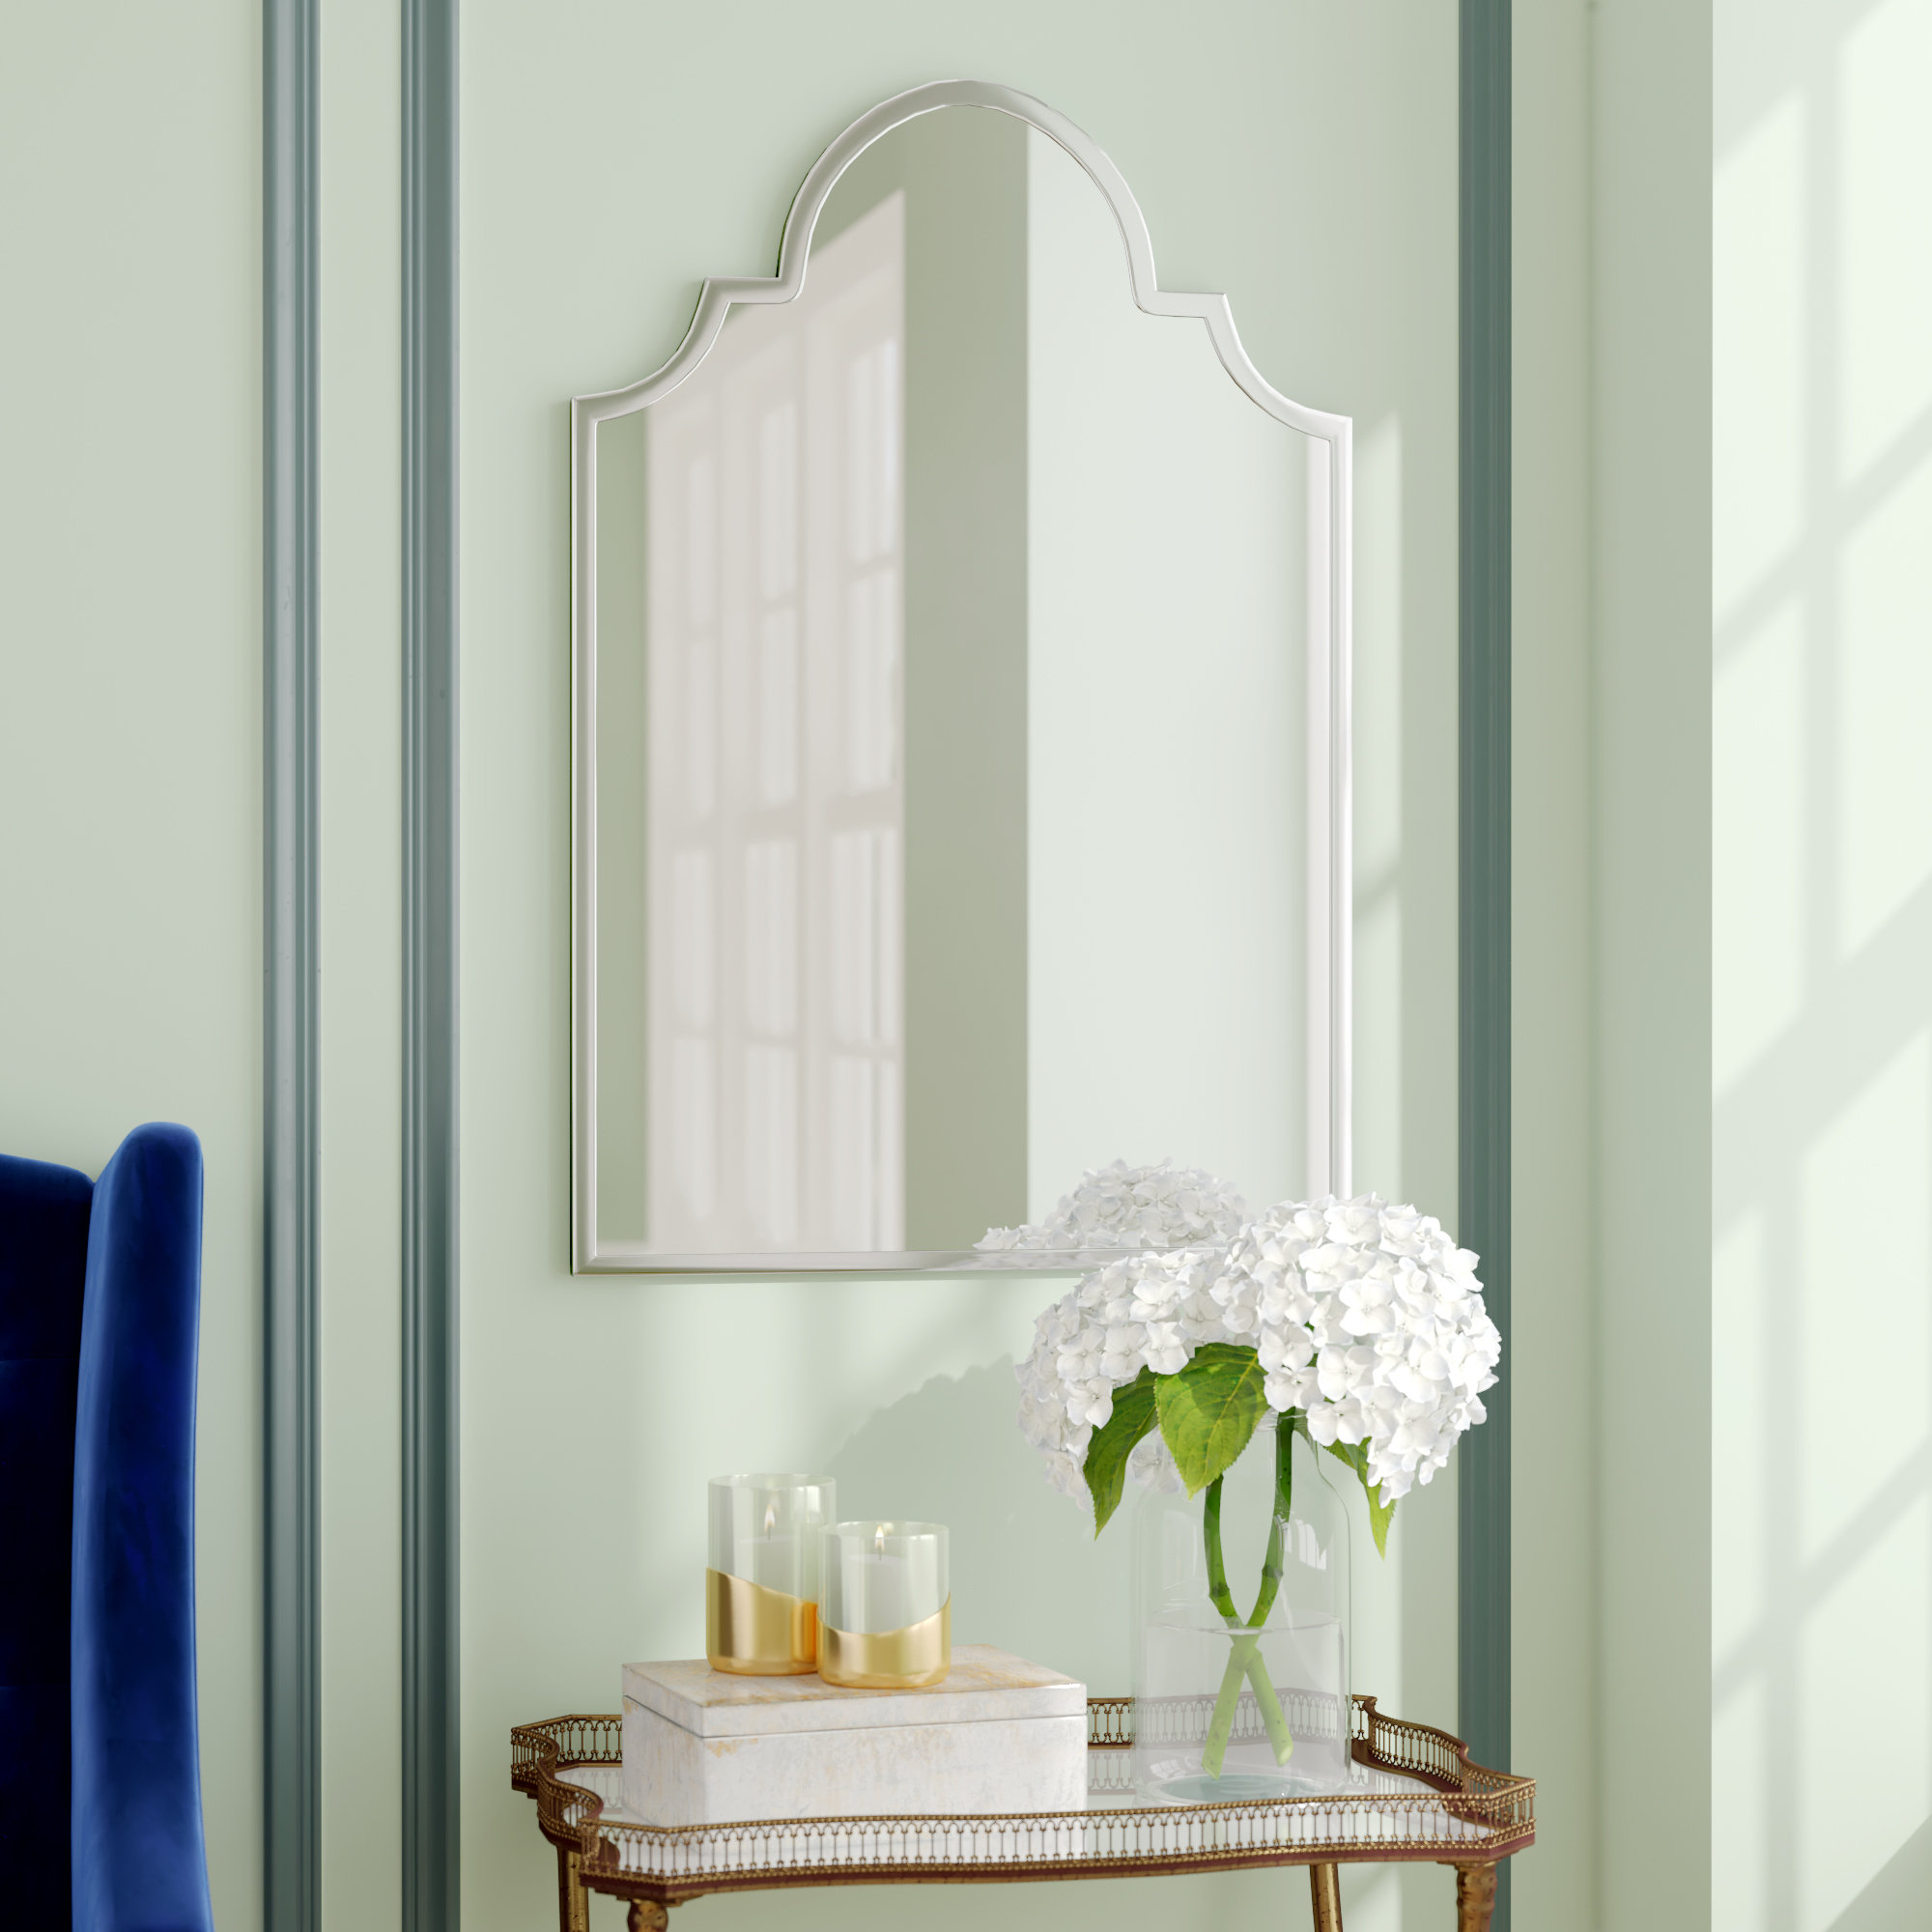 Cassel Modern & Contemporary Accent Mirror For Fashionable Menachem Modern & Contemporary Accent Mirrors (View 16 of 20)